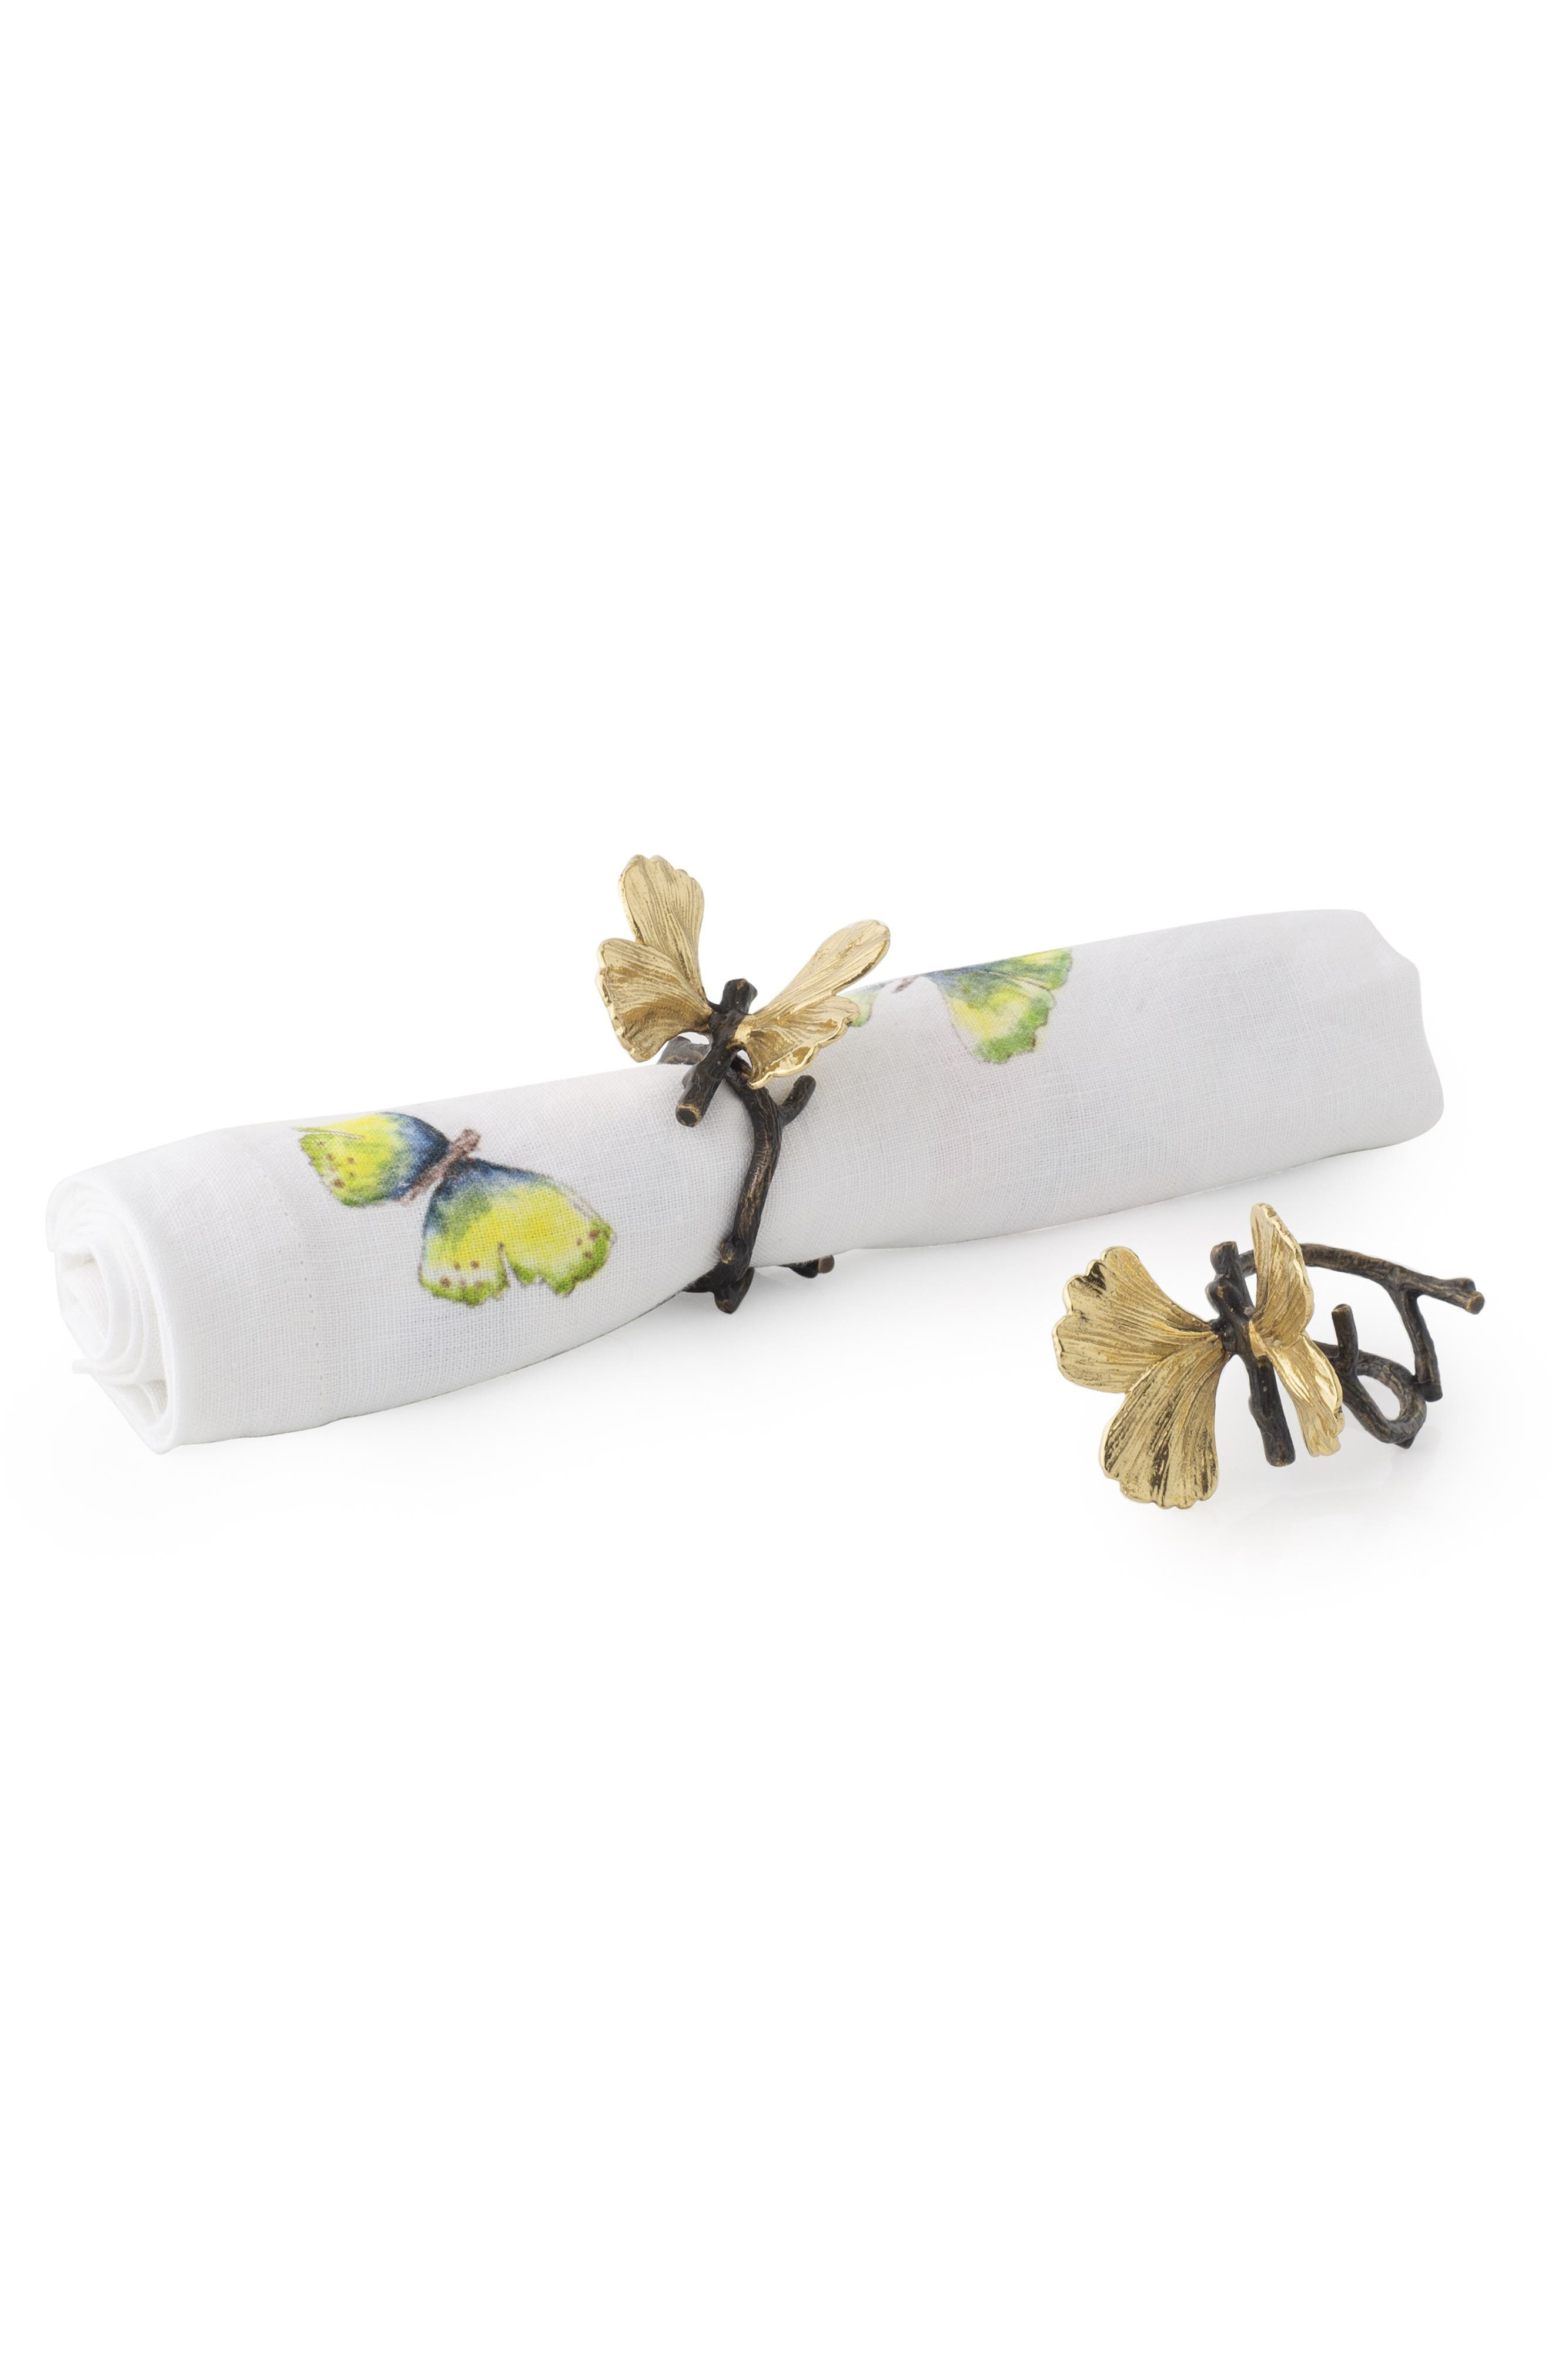 MICHAEL ARAM, Butterfly Ginkgo Set of 4 Napkin Rings, Main thumbnail 1, color, SILVER